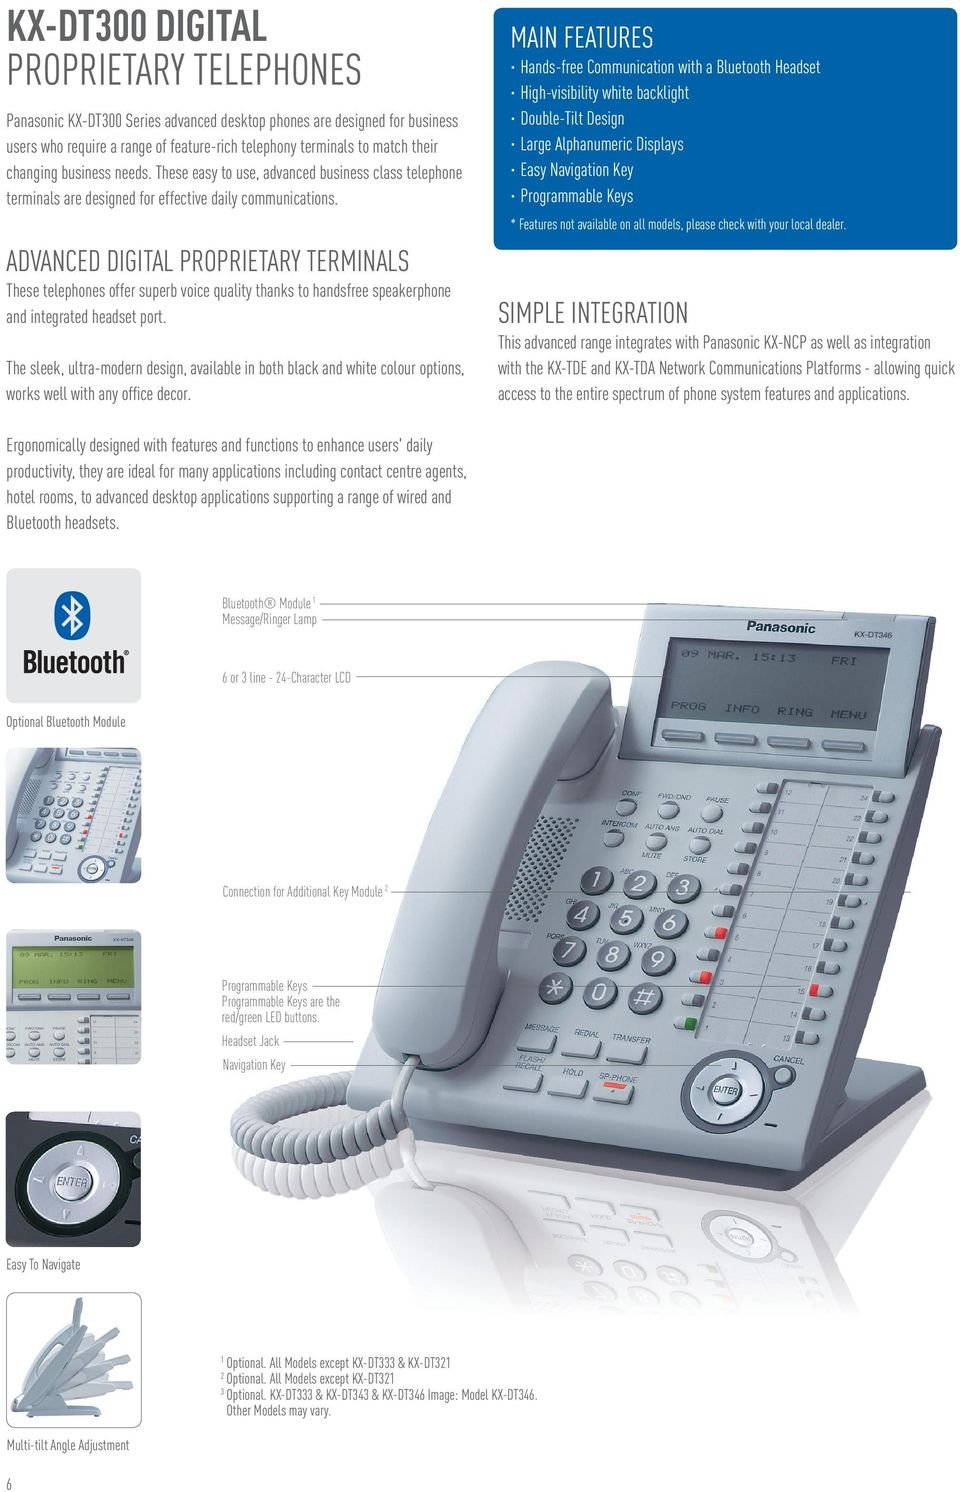 ADVANCED DIGITAL PROPRIETARY TERMINALS These telephones offer superb voice quality thanks to handsfree speakerphone and integrated headset port.